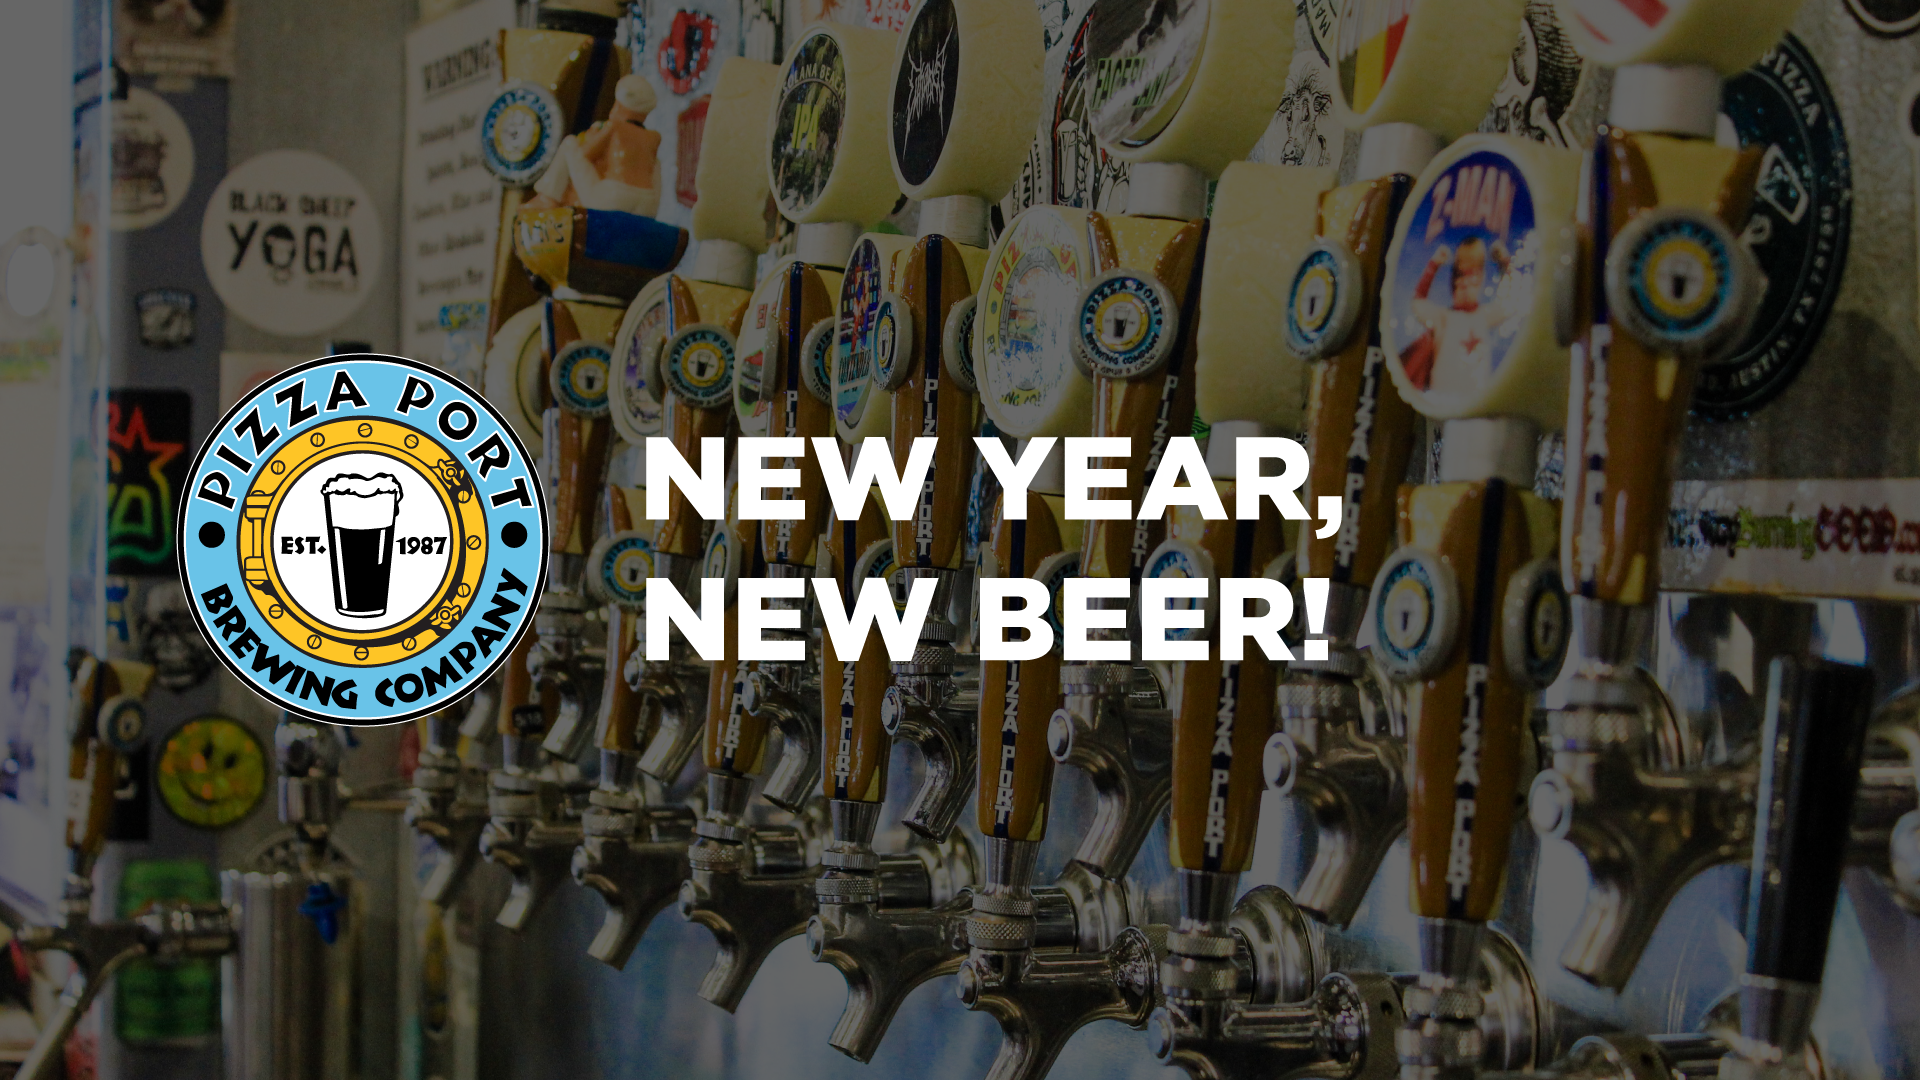 New Year, New Beer! with Pizza Port, Odell and Sierra Nevada